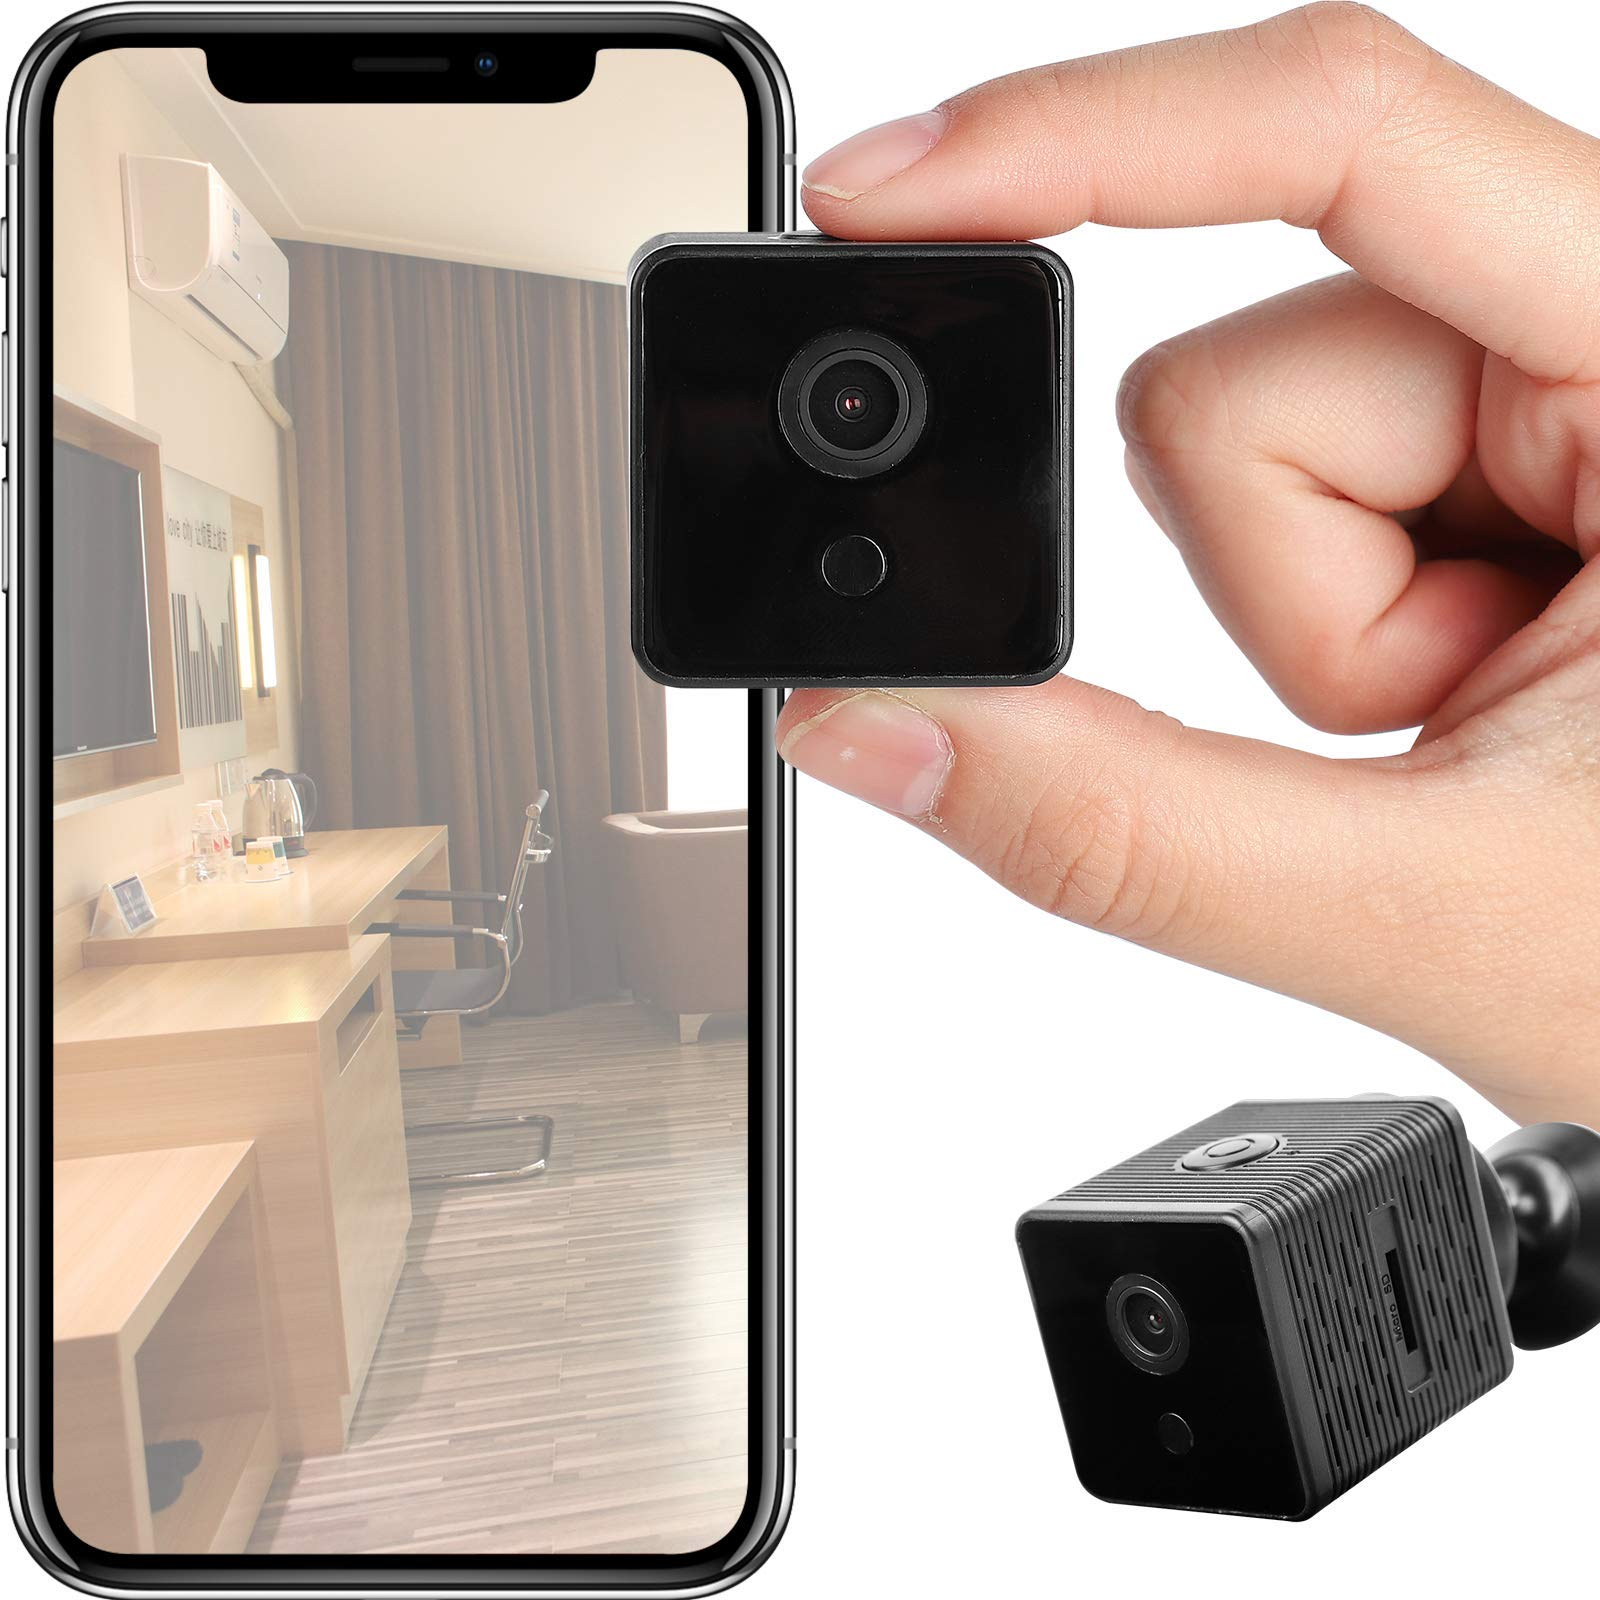 ATONGMU 1080P HD Mini WiFi Camera Low-Power Consumption Night Vision, Motion Detection, Live Streaming,Home Security Wireless Camera, Nanny Cam M11_01